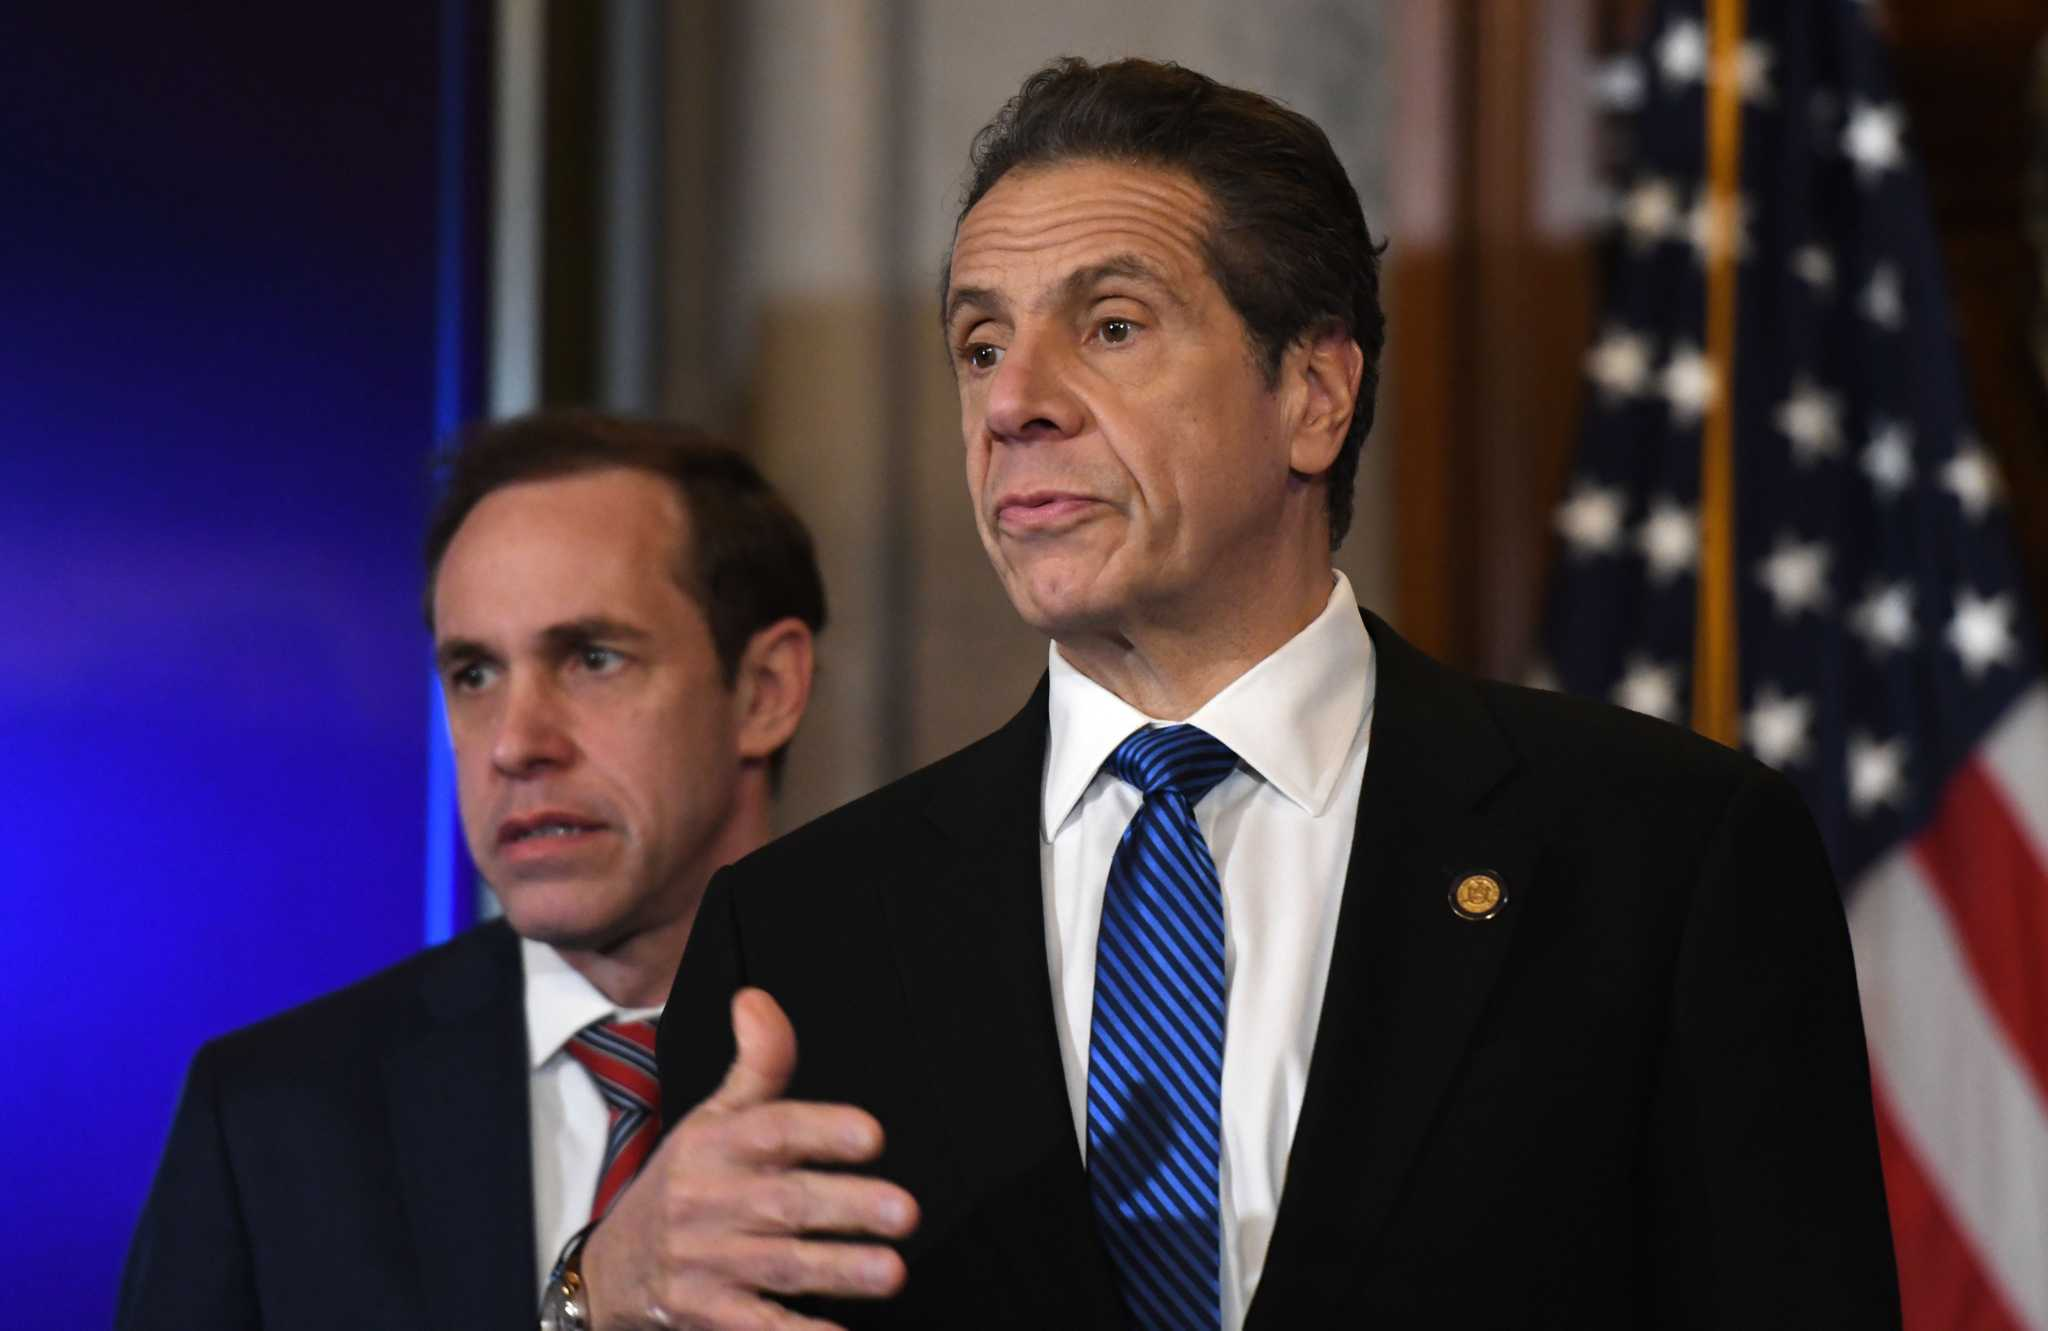 Cuomo defends nursing home policies as long-term care deaths top 5,800